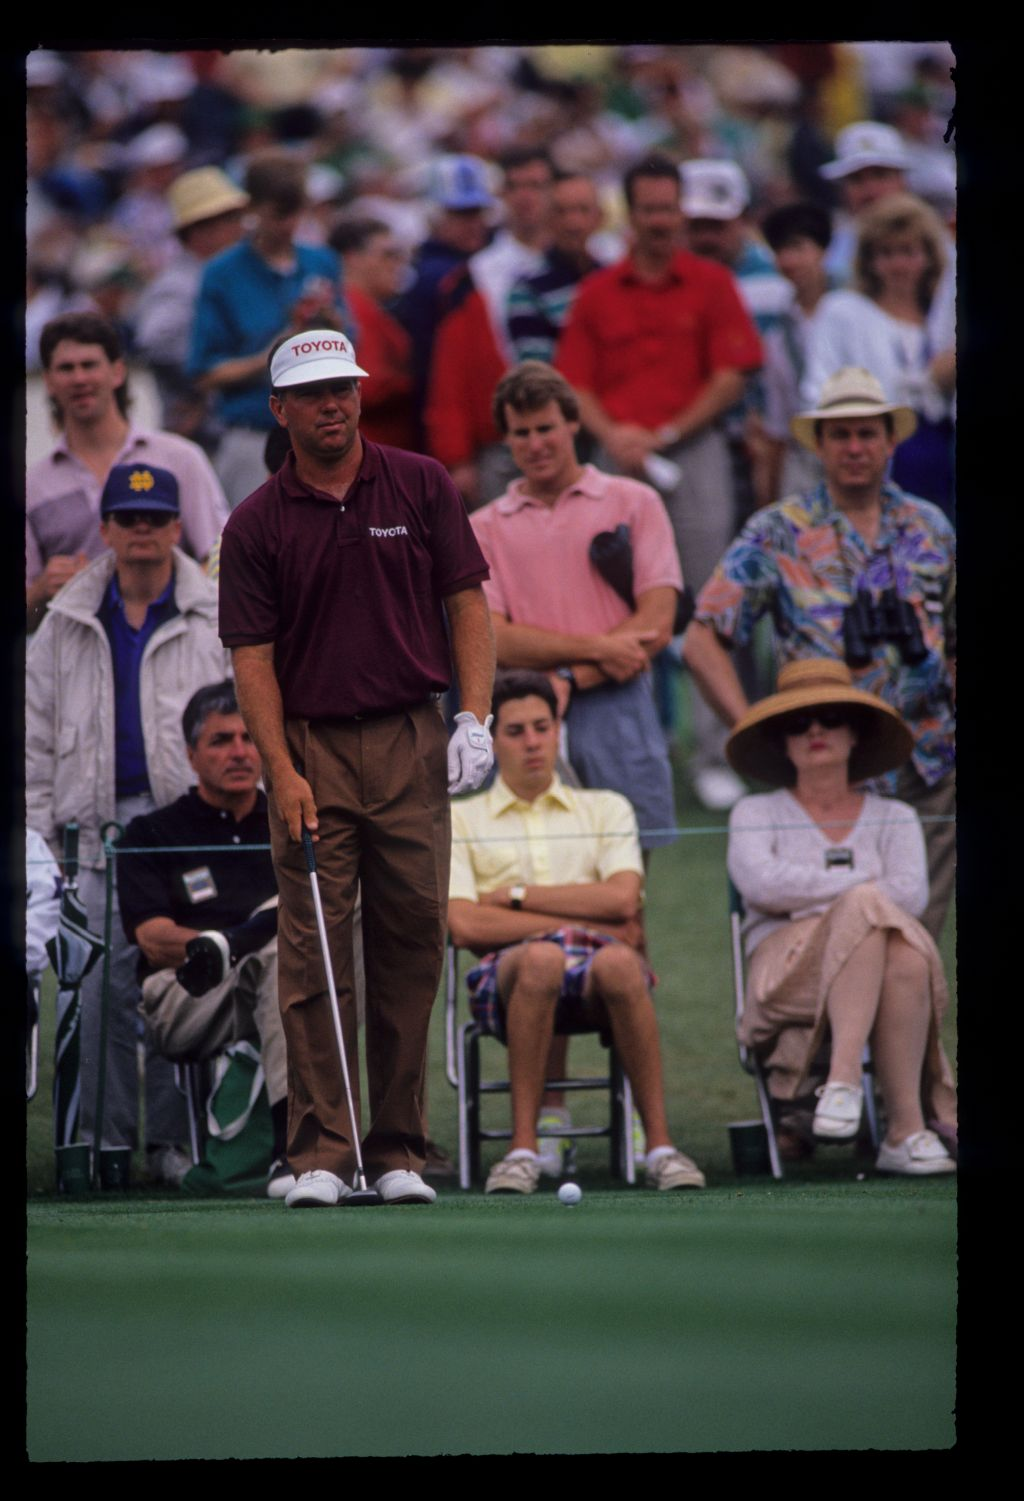 Mark O'Meara preparing to hit from the tee during the 1991 Masters